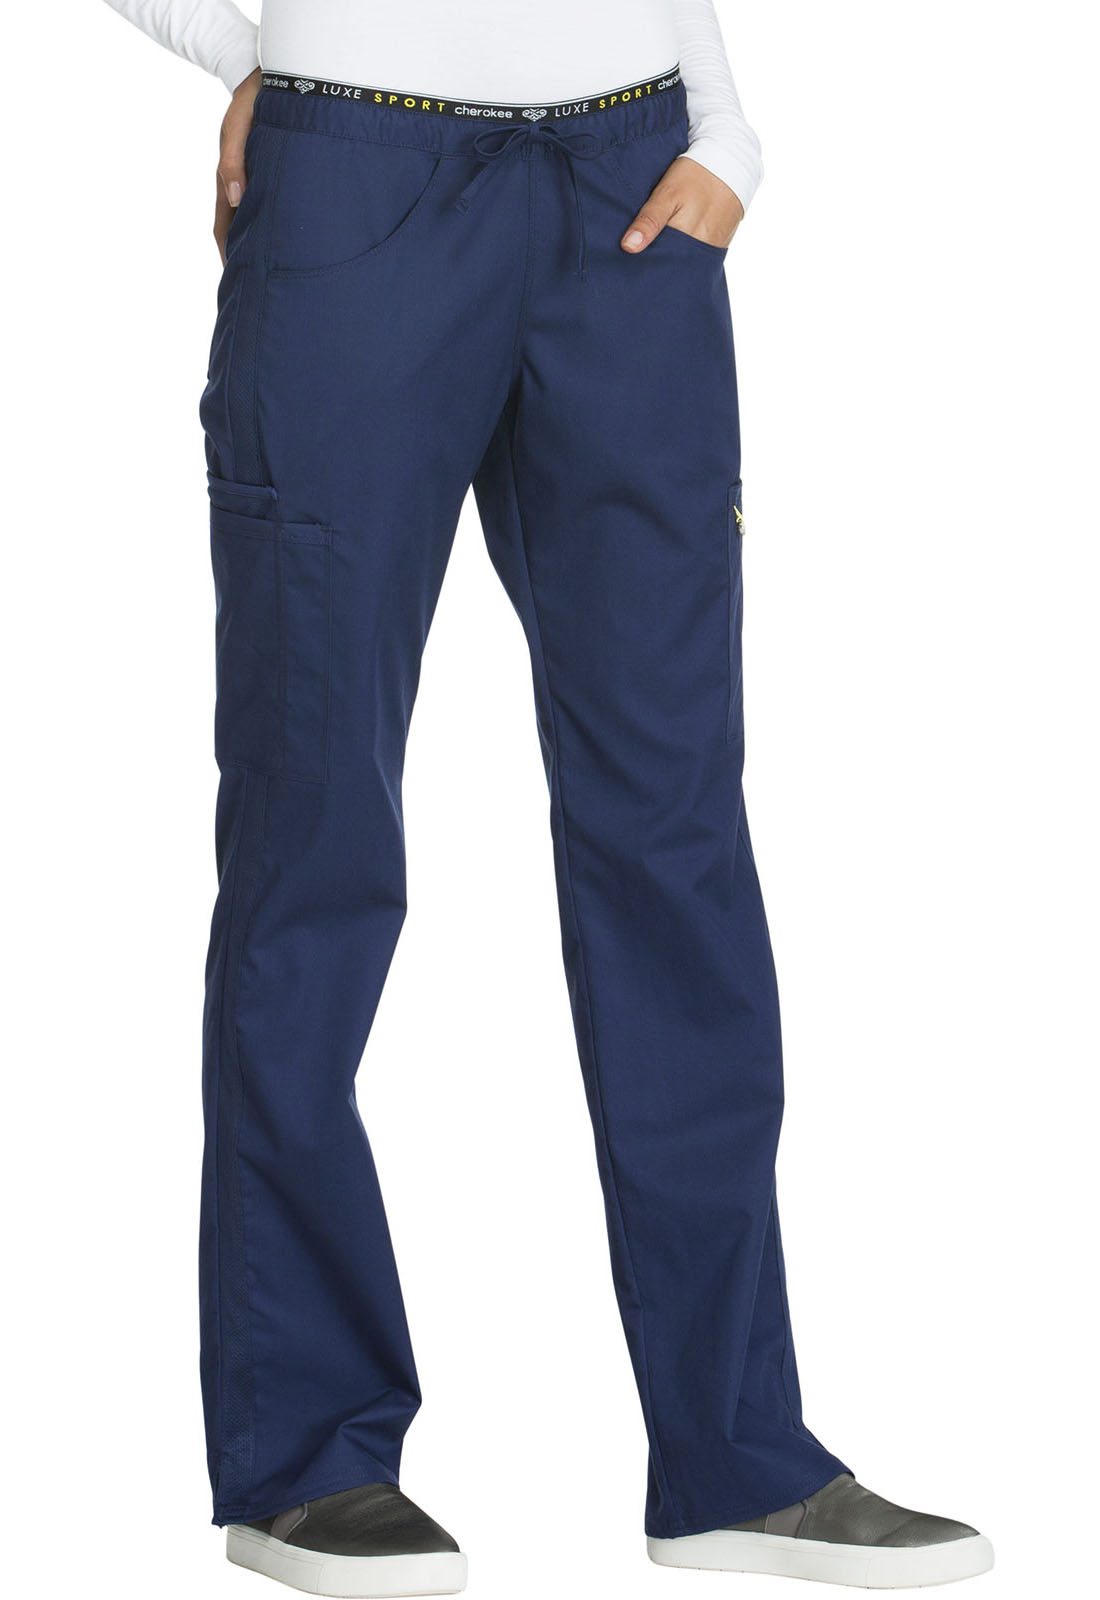 69c9febb950 Luxe Sport Mid Rise Straight Leg Pull-on Pant in Navy CK003T-NAVV ...